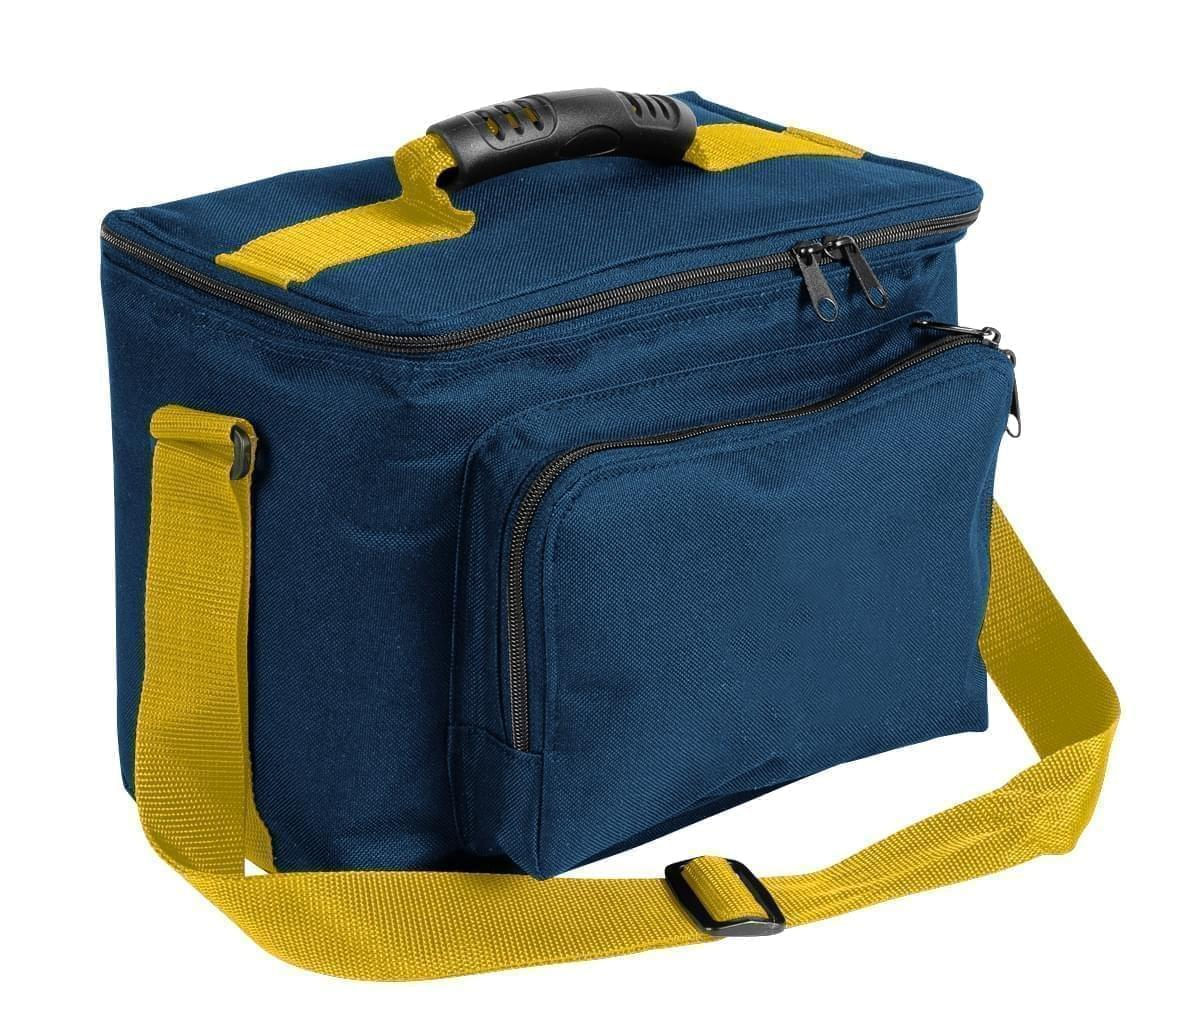 USA Made Nylon Poly Lunch Coolers, Navy-Gold, 11001161-AW5